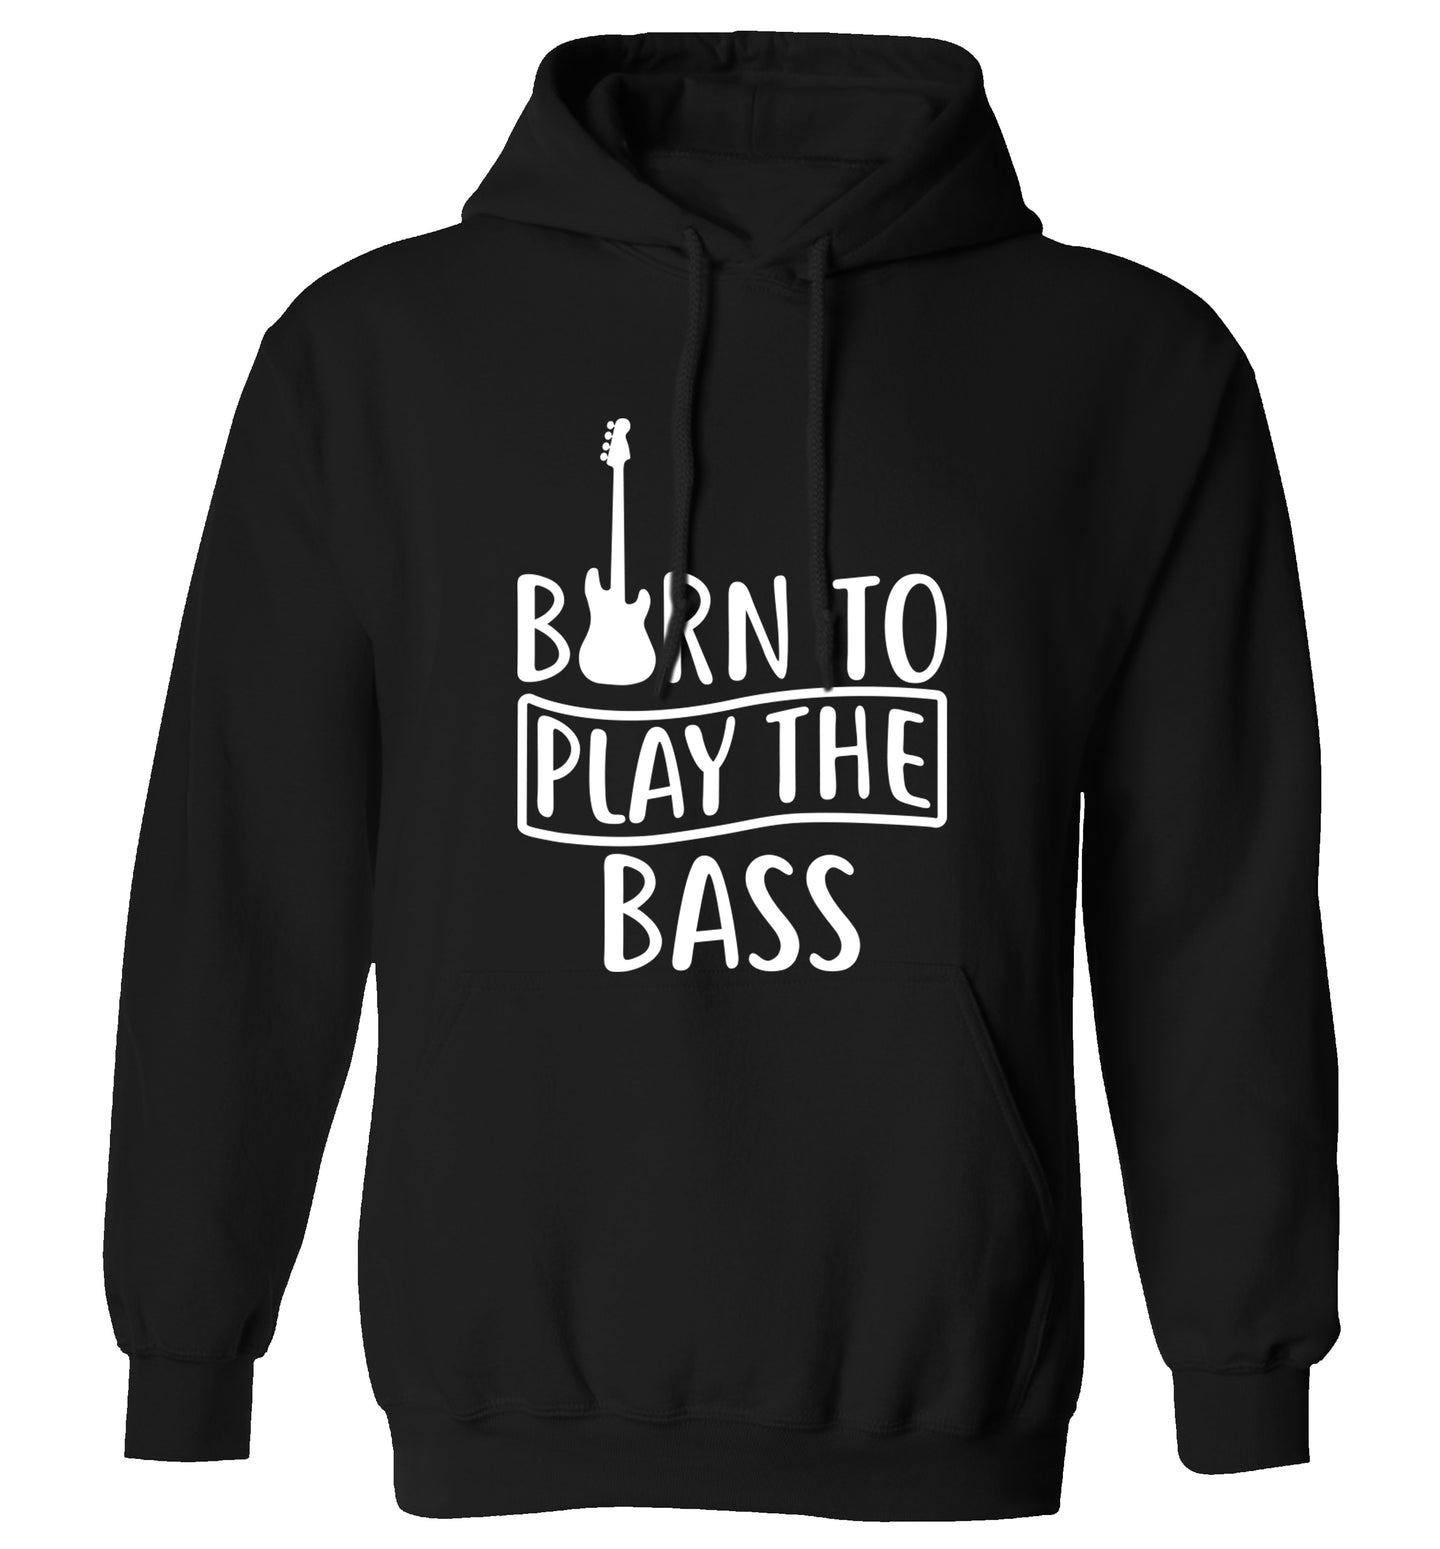 Born to play the bass adults unisex black hoodie 2XL